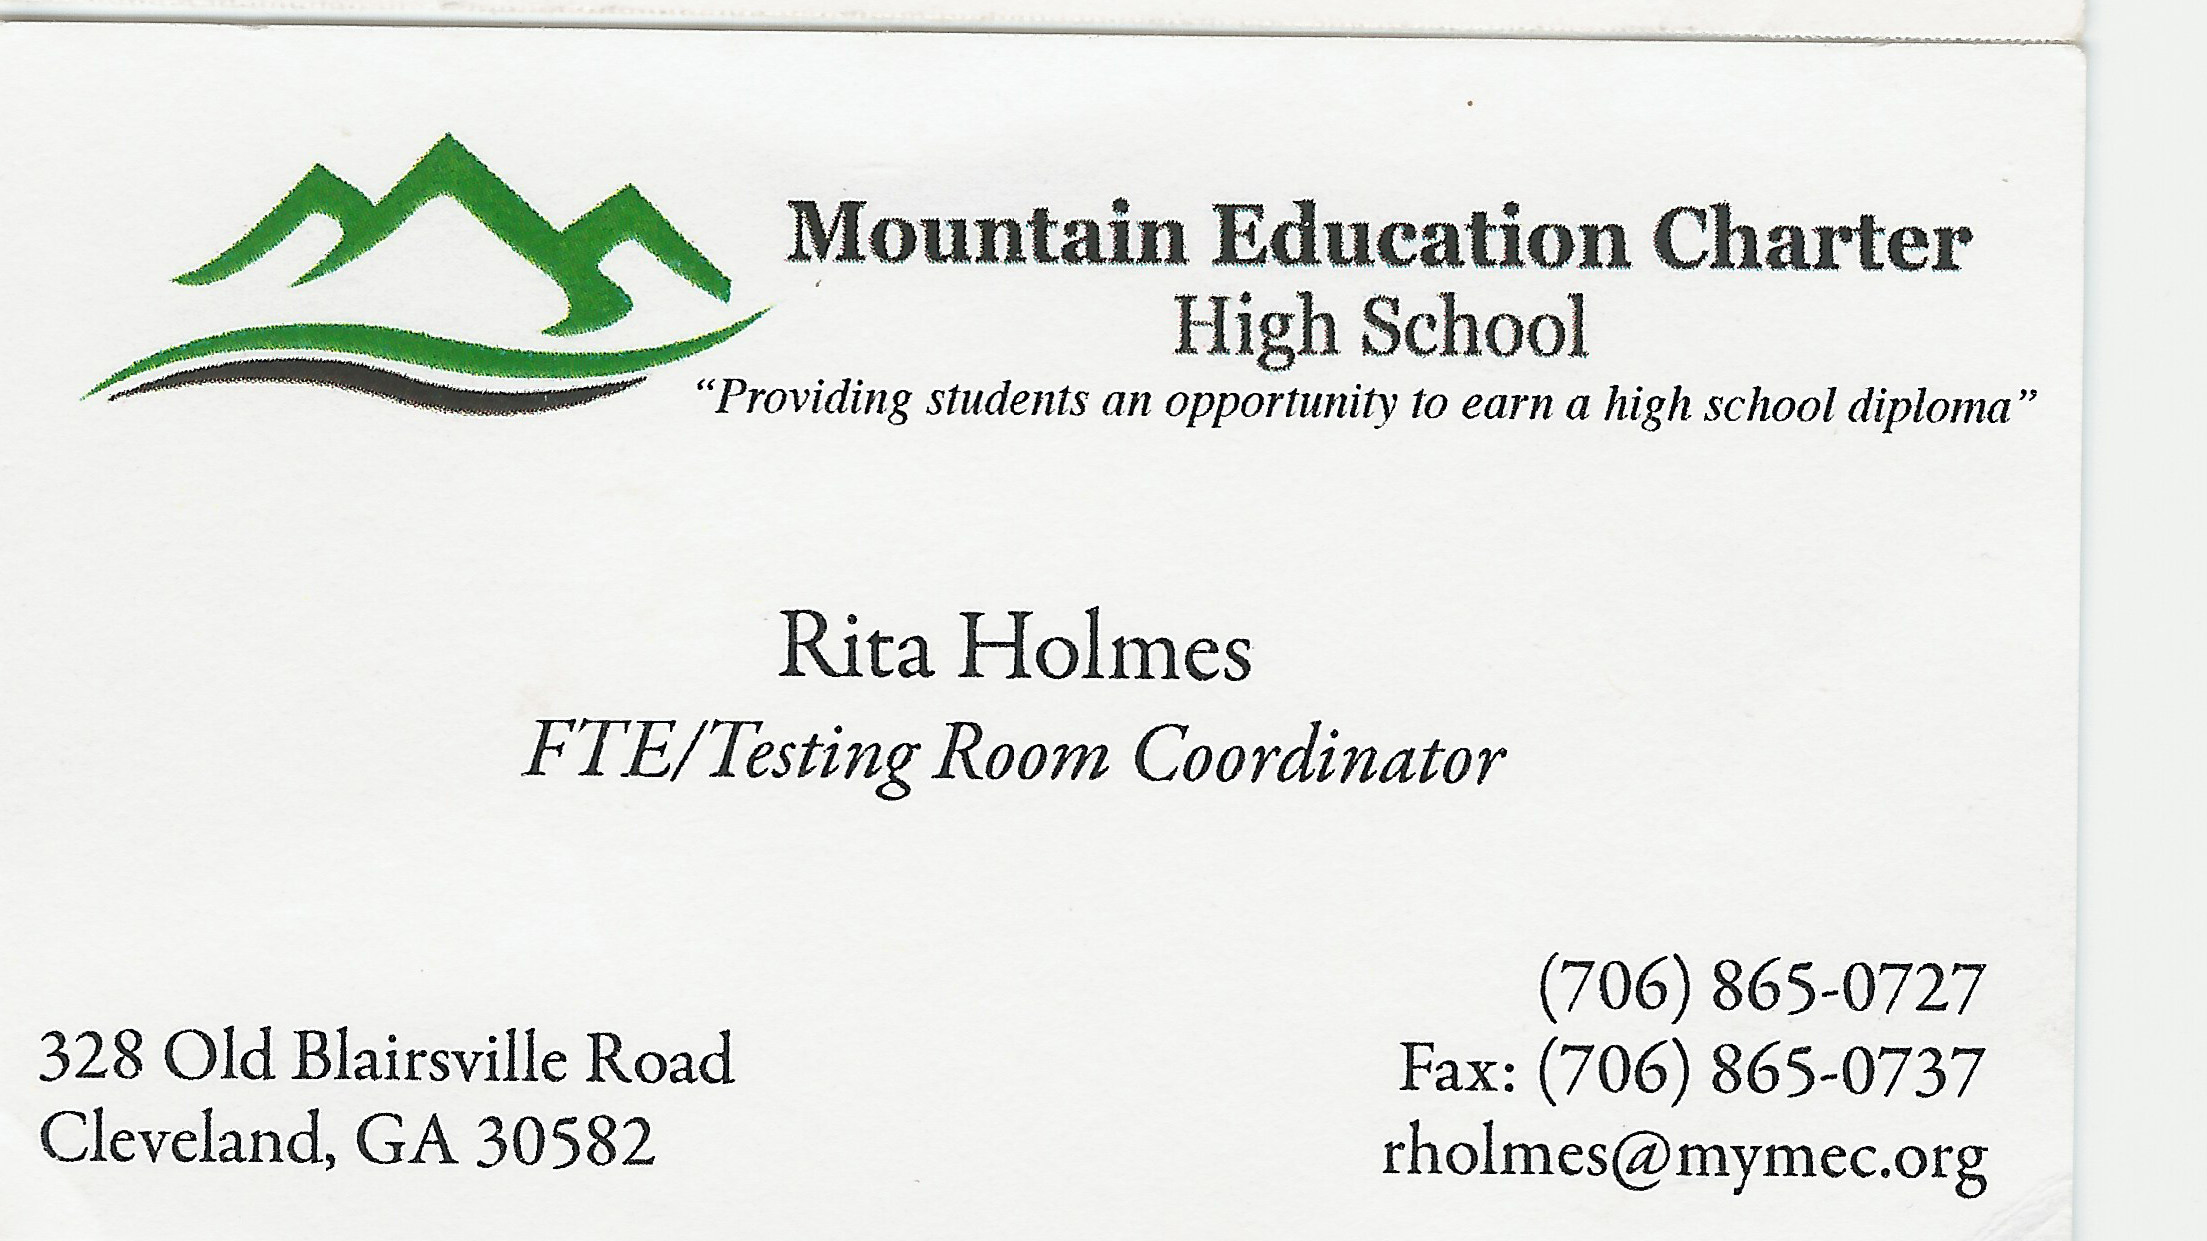 Mountain Education Charter High School